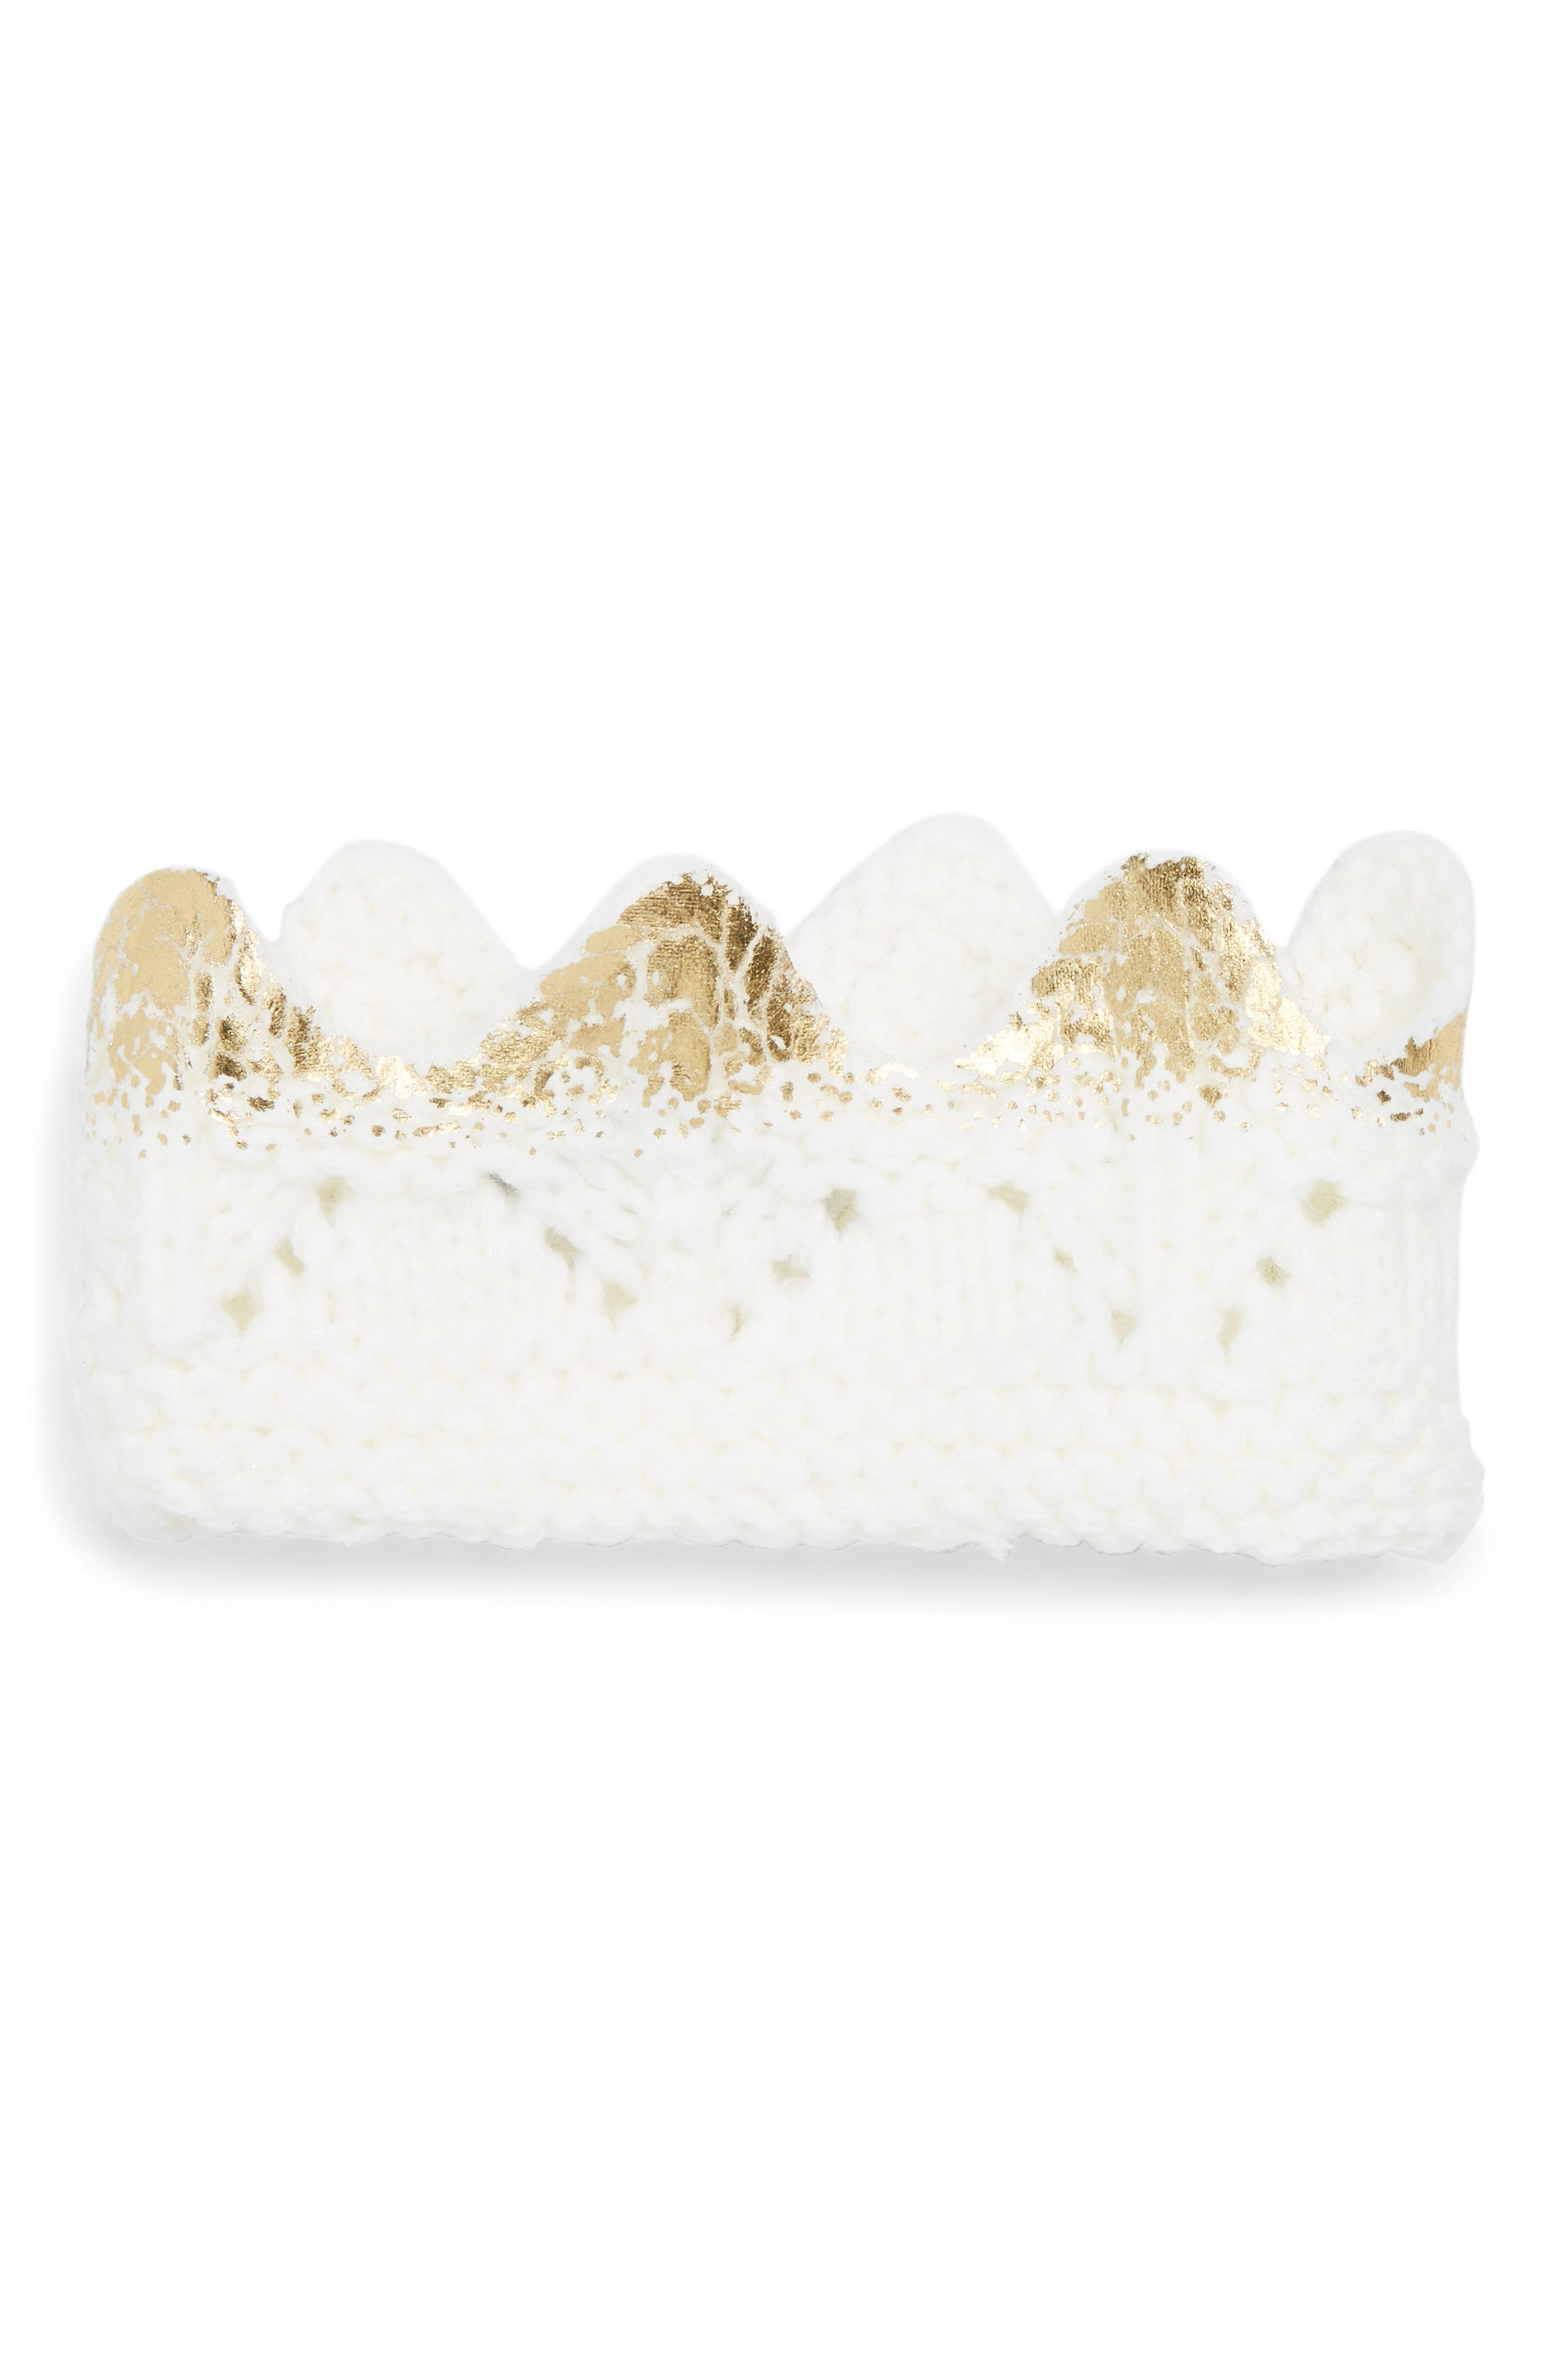 Aiden Knit Crown,                         Main,                         color, Cream And Gold